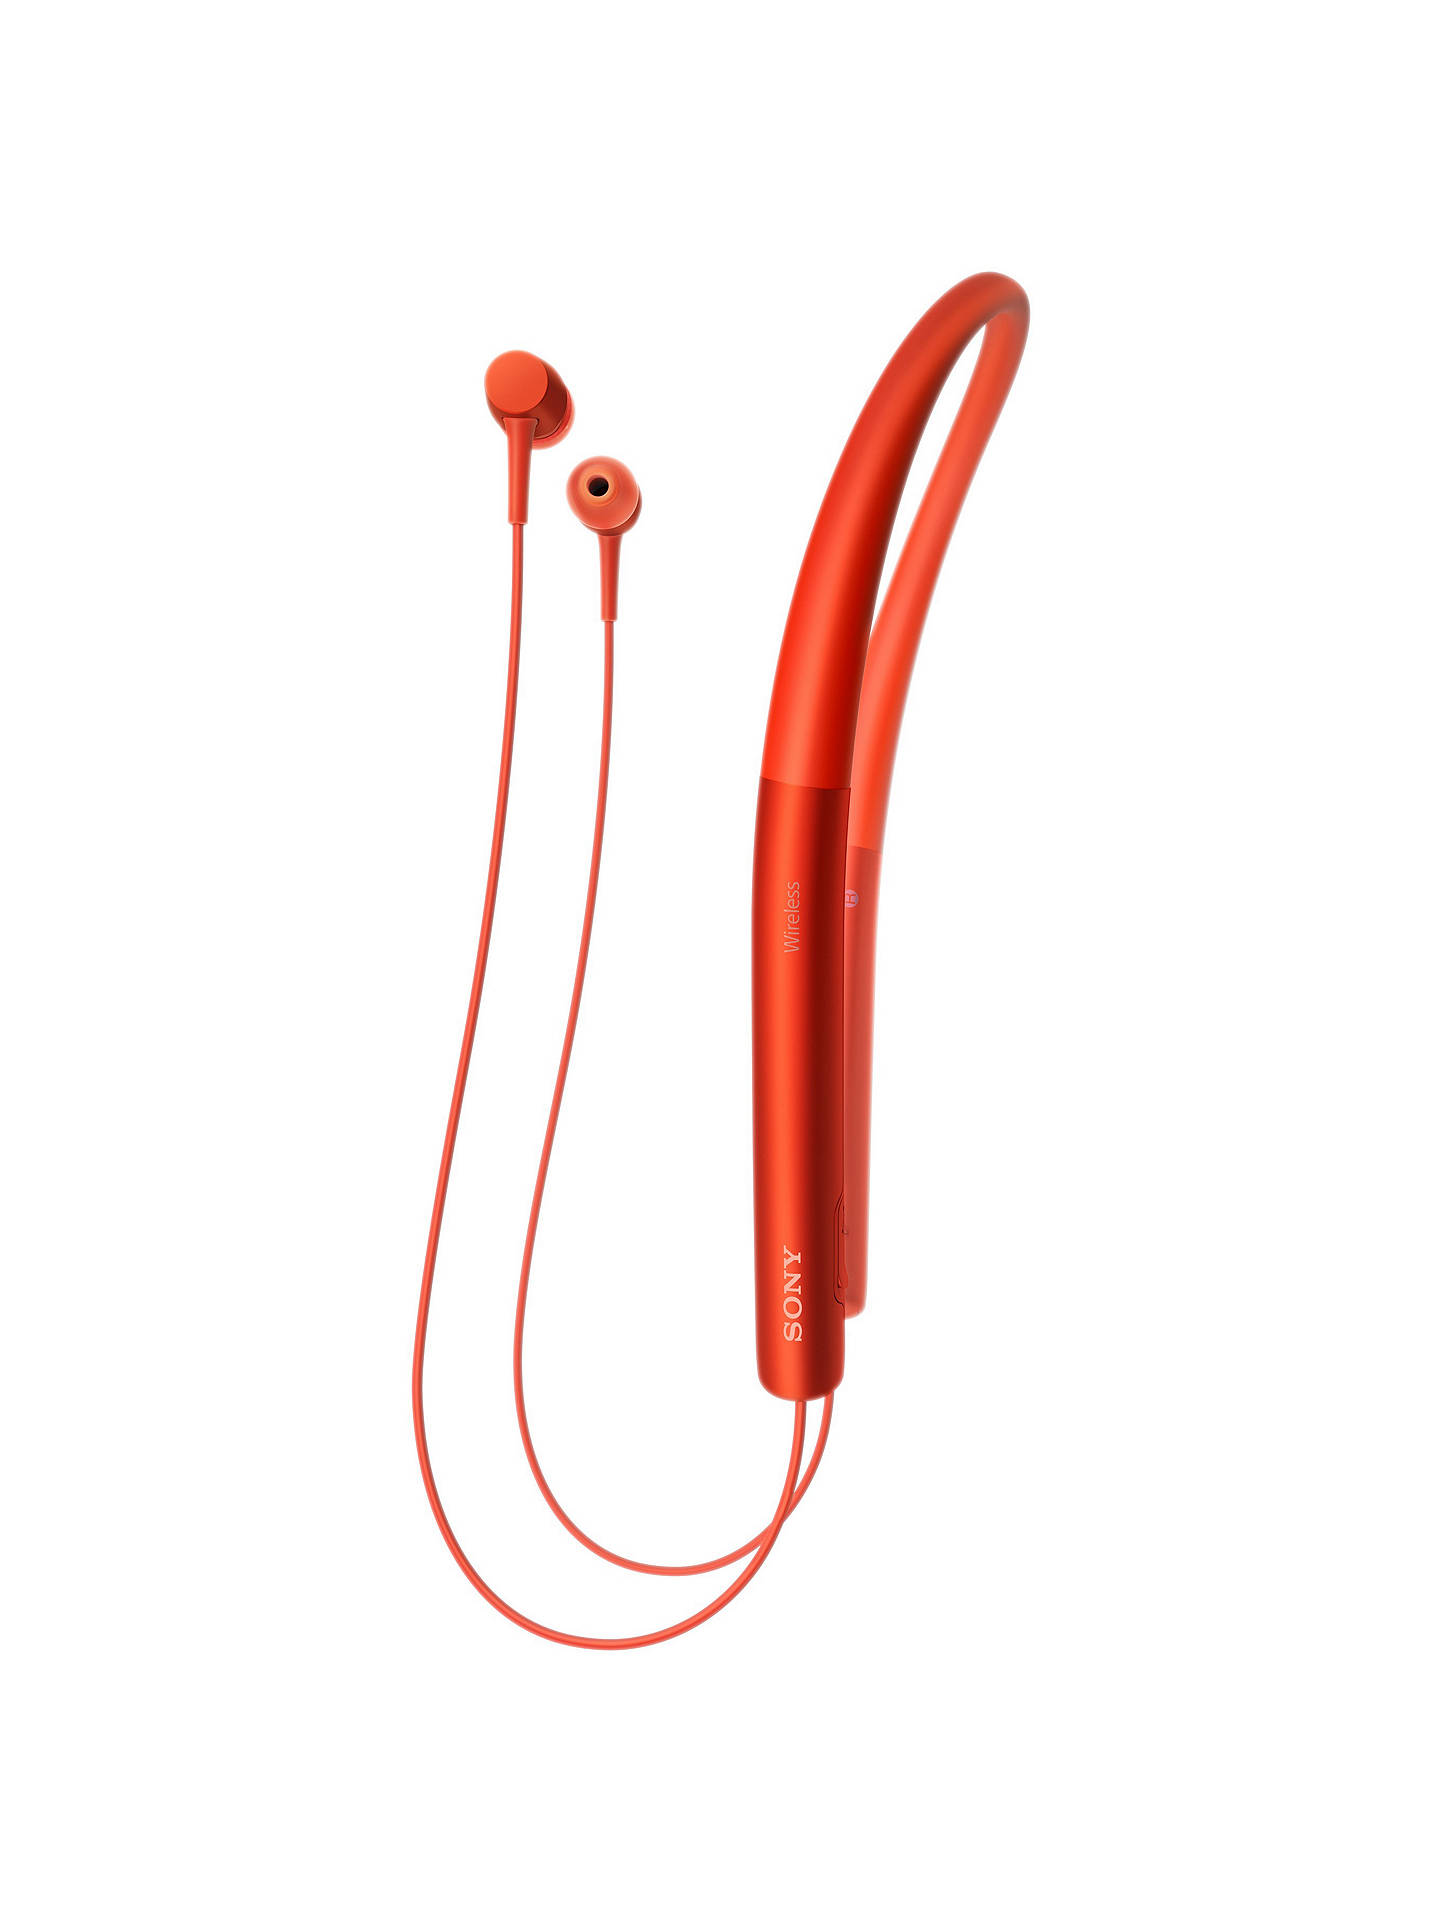 BuySony MDR-EX750BT h.ear in Wireless Bluetooth High Resolution In-Ear Headphones with NFC One-Touch, Cinnabar Red Online at johnlewis.com